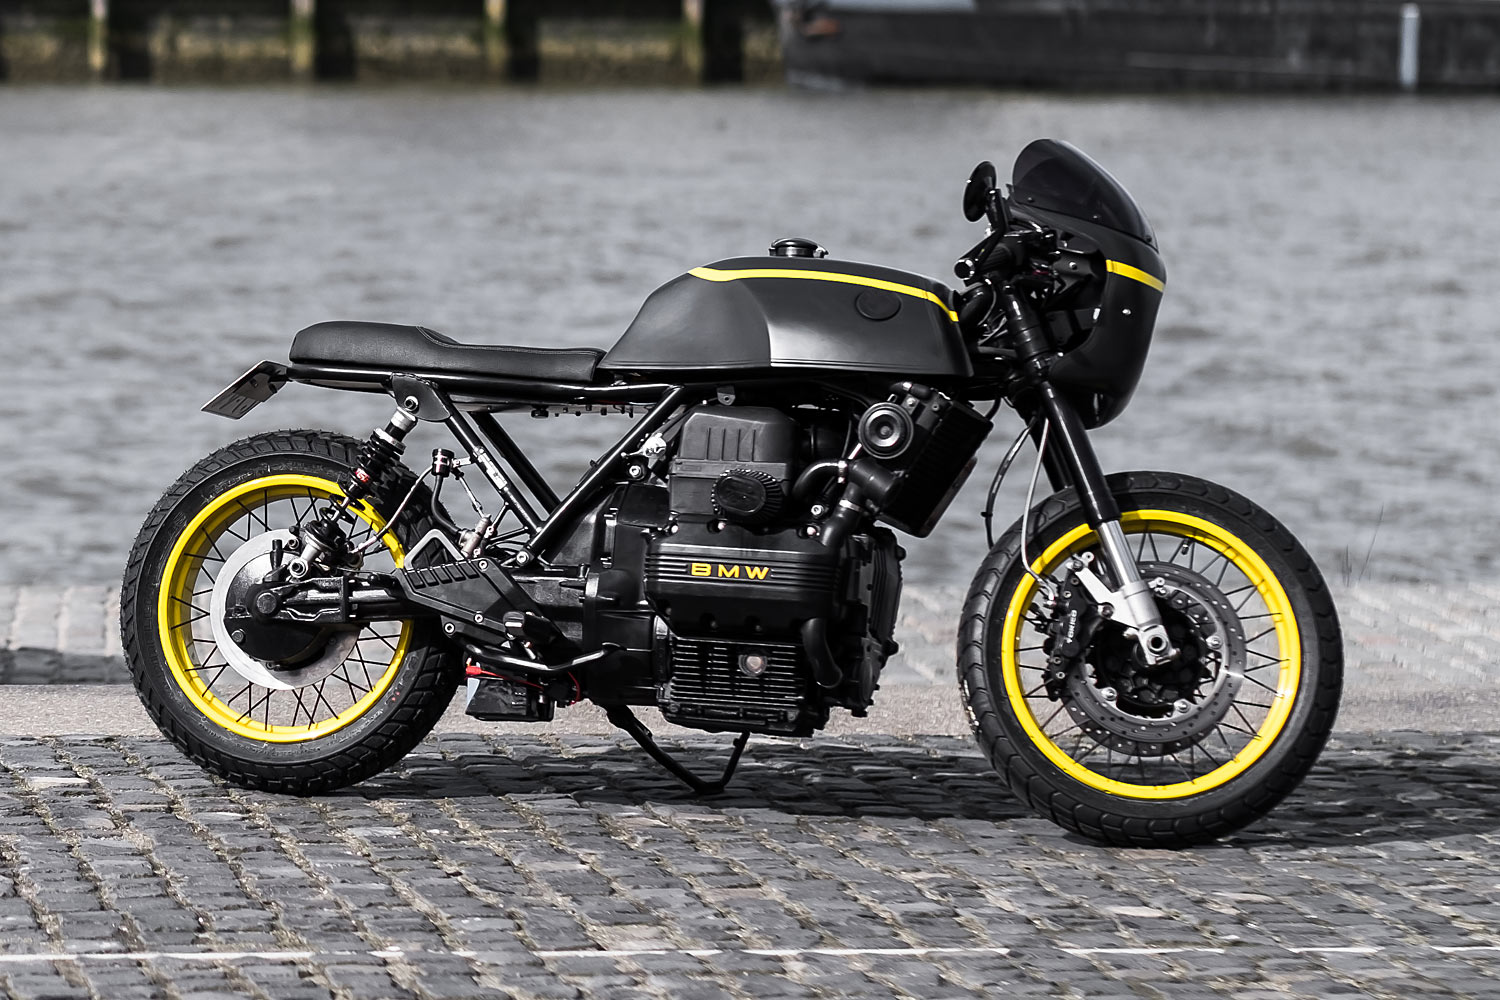 1987 bmw k75 cafe racer moto adonis. Black Bedroom Furniture Sets. Home Design Ideas